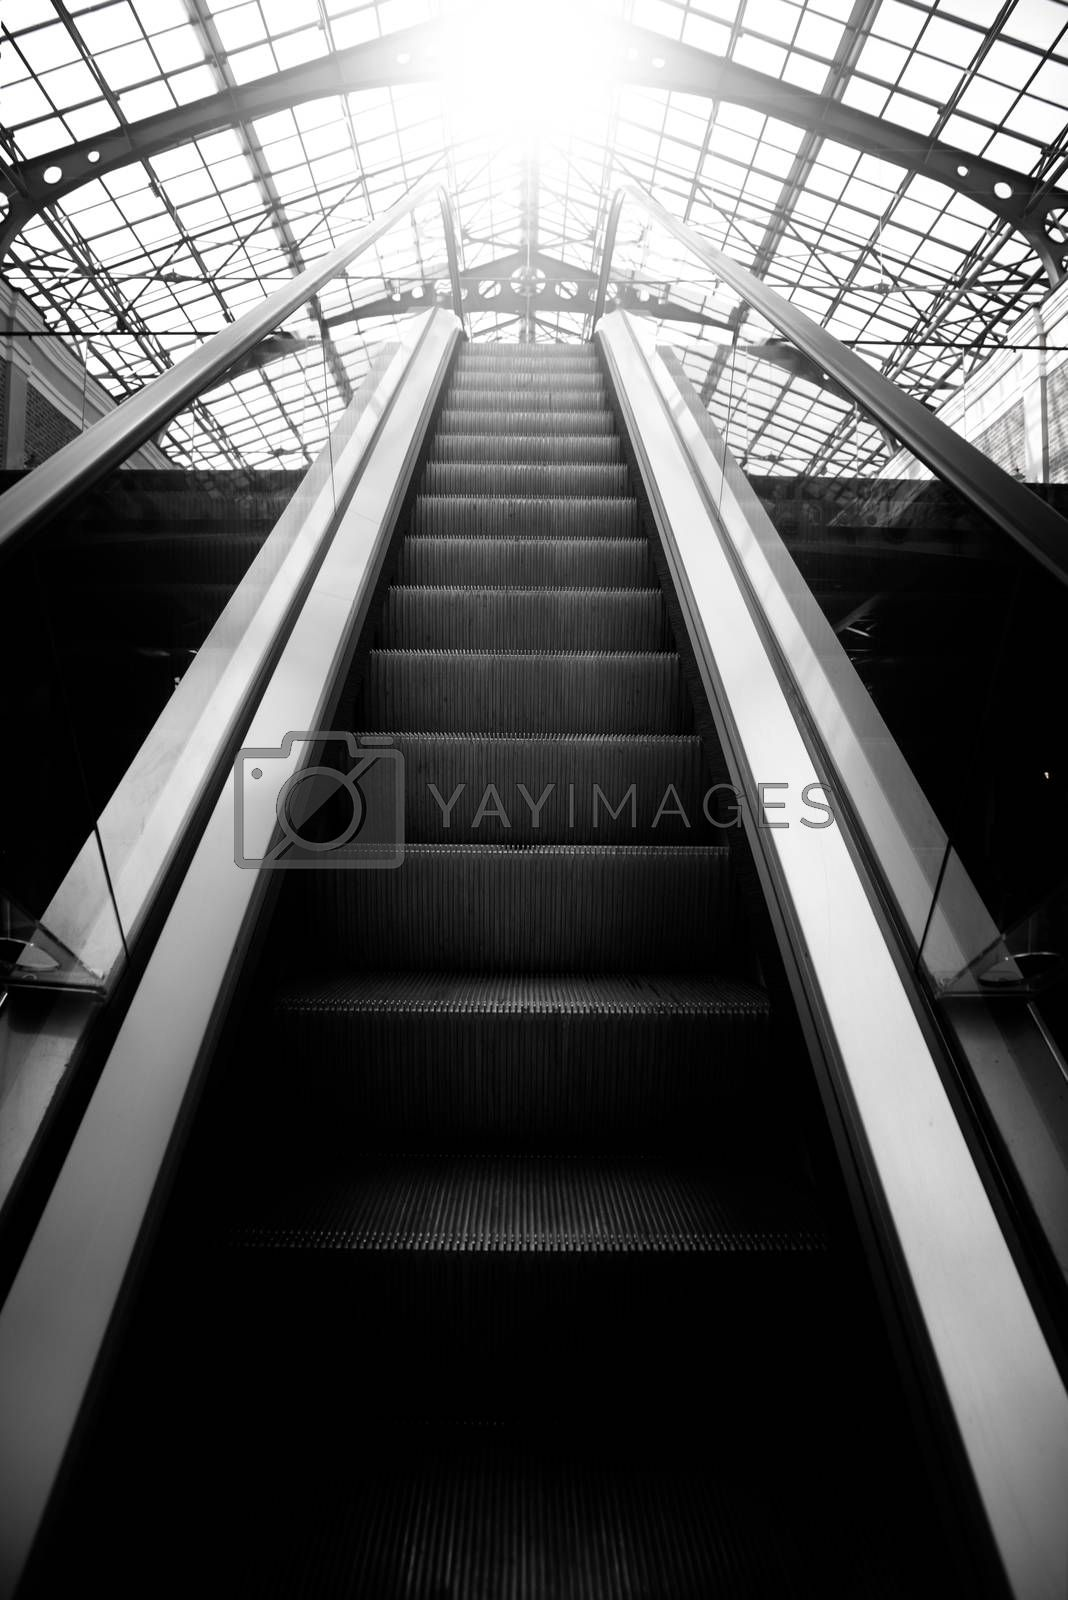 The path of the light, the path to success, escalator, lift up